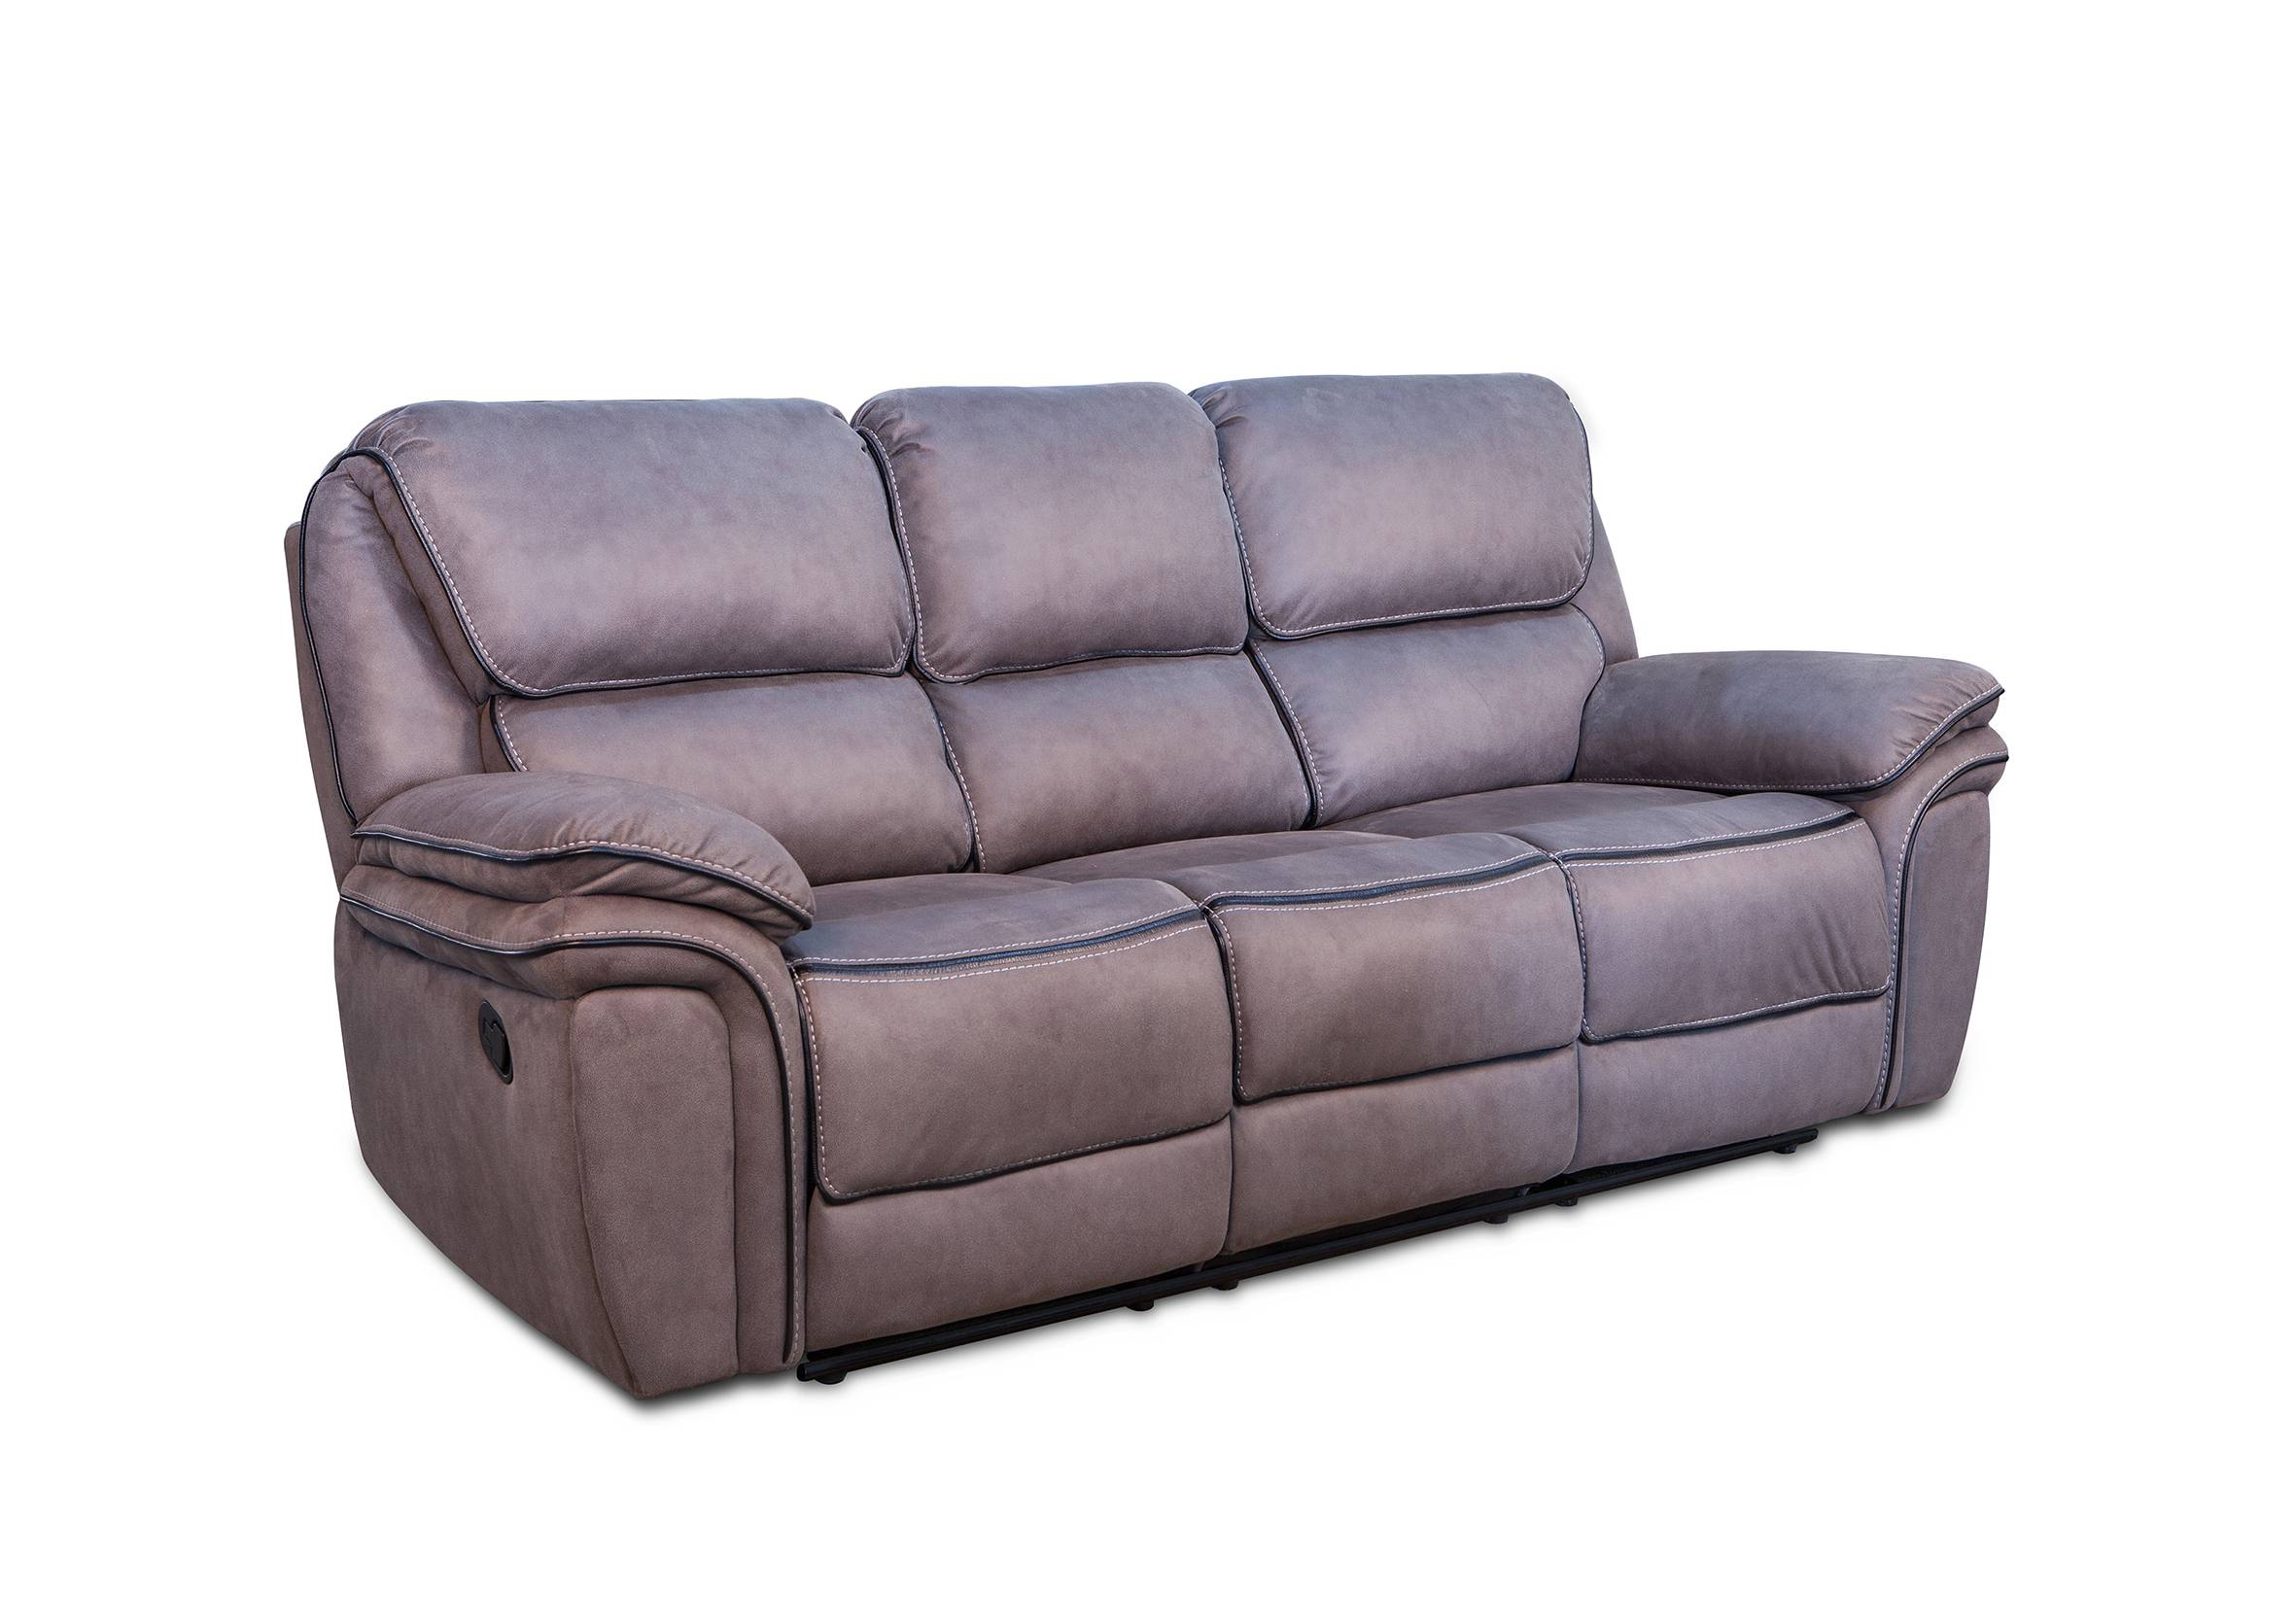 - China Discountable Price Recliner Sofa With Handle - Wholesale 1 2